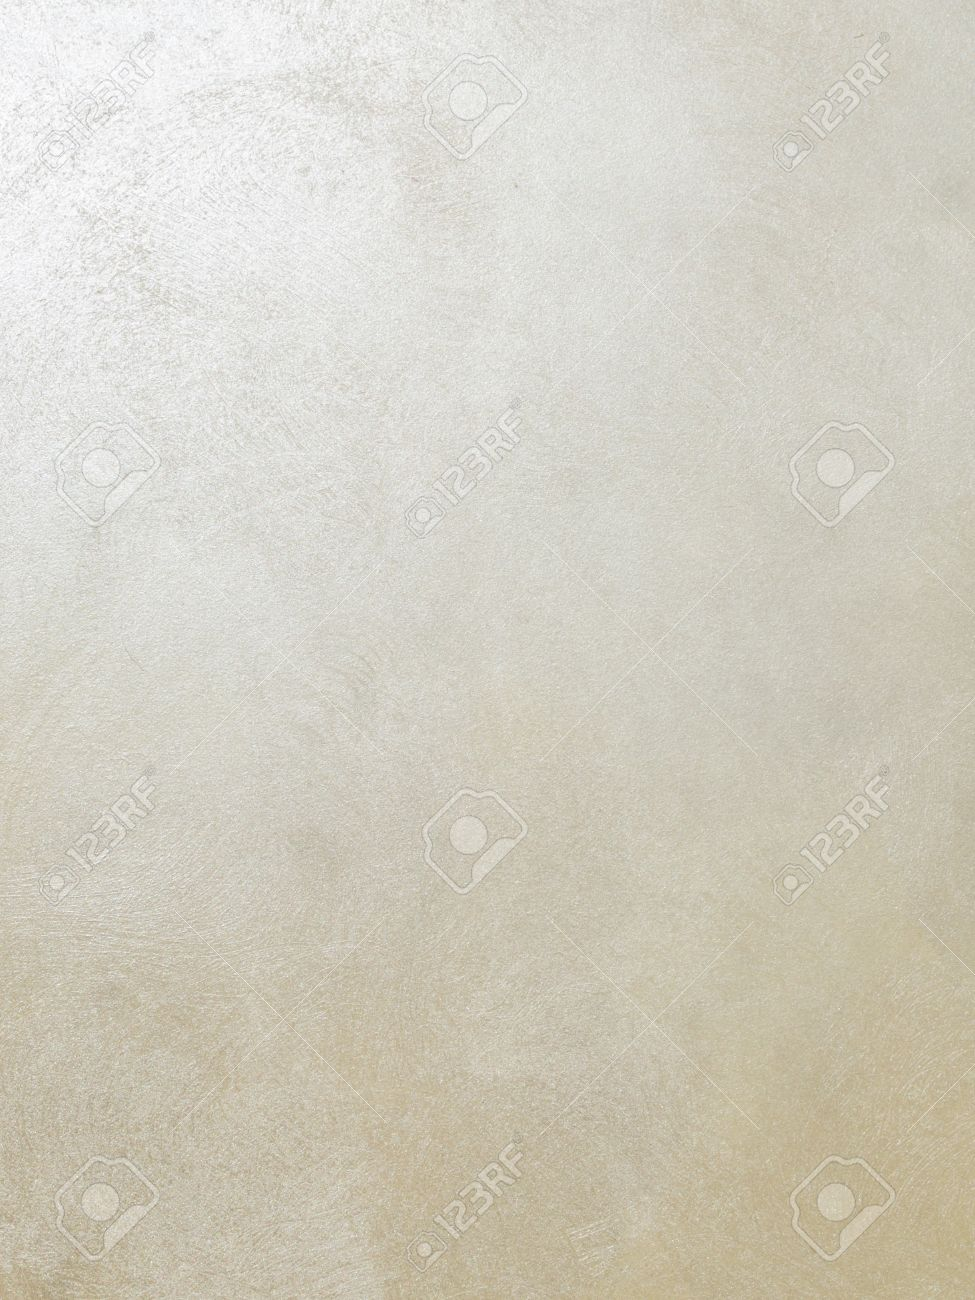 Decorative Light Beige Silk Silver Paint With A Shiny Textured Surface On  The Wall Stock Photo